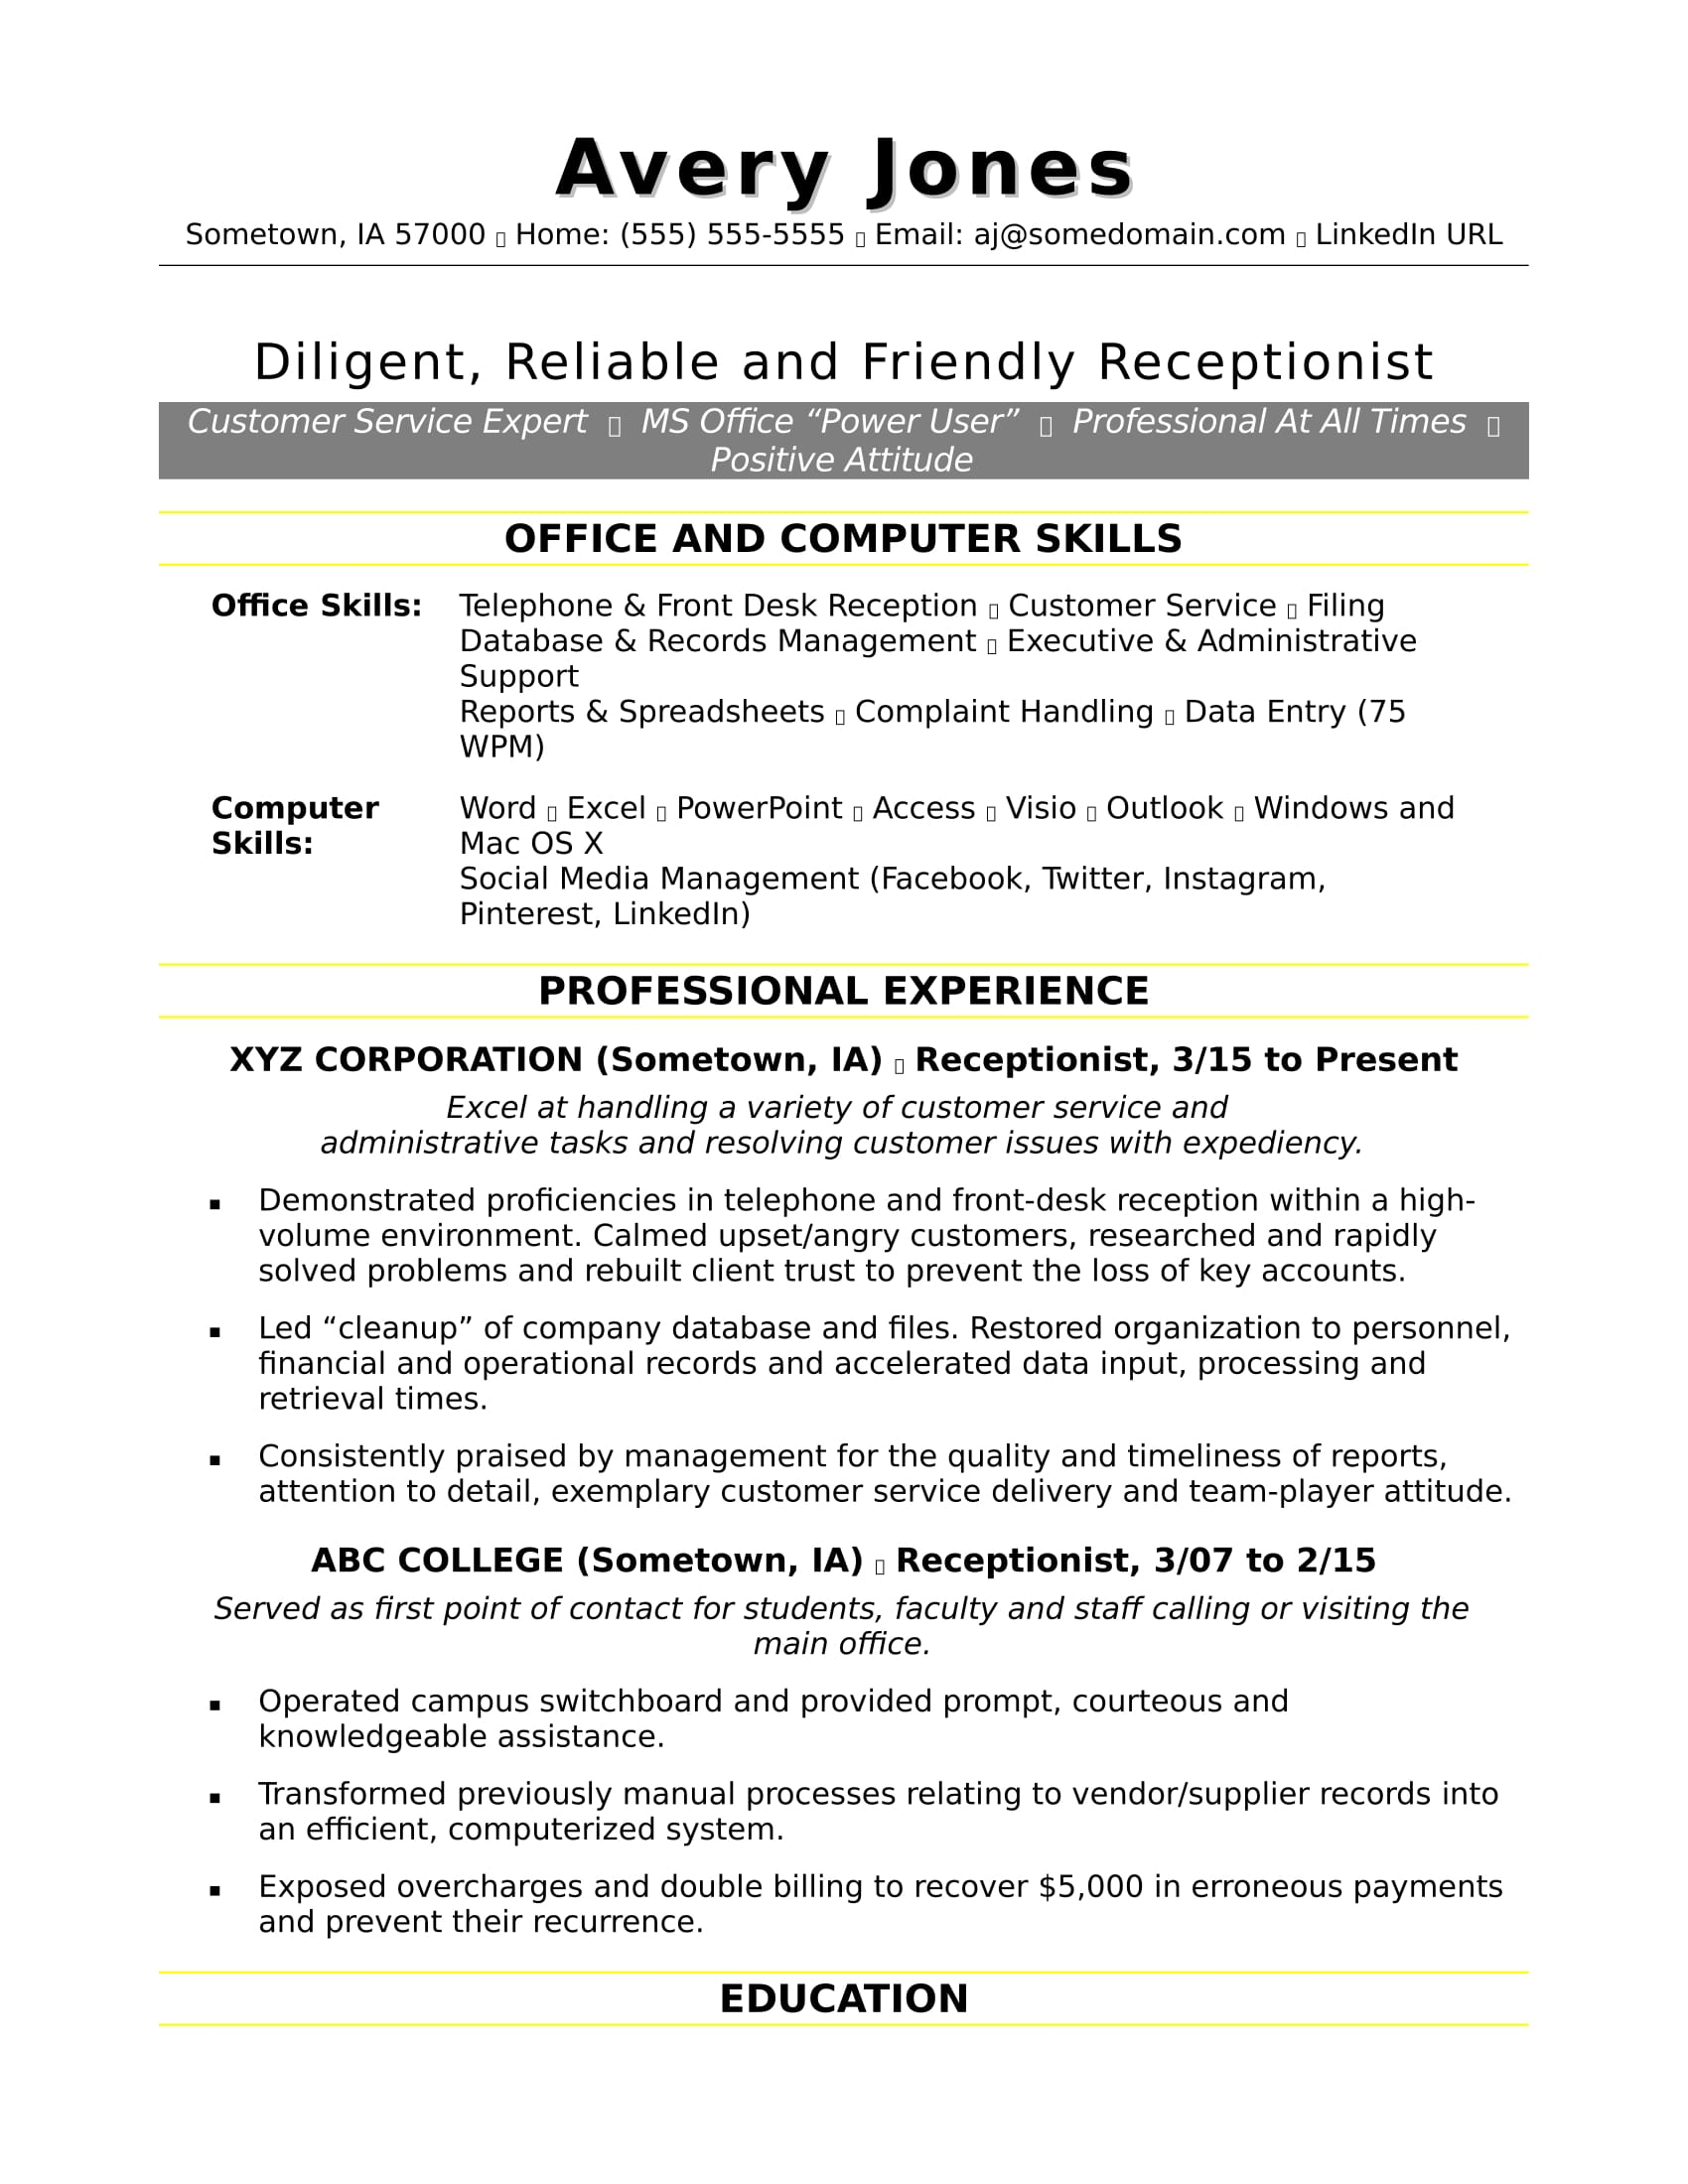 Delightful Sample Resume For A Receptionist Idea Receptionist Resume